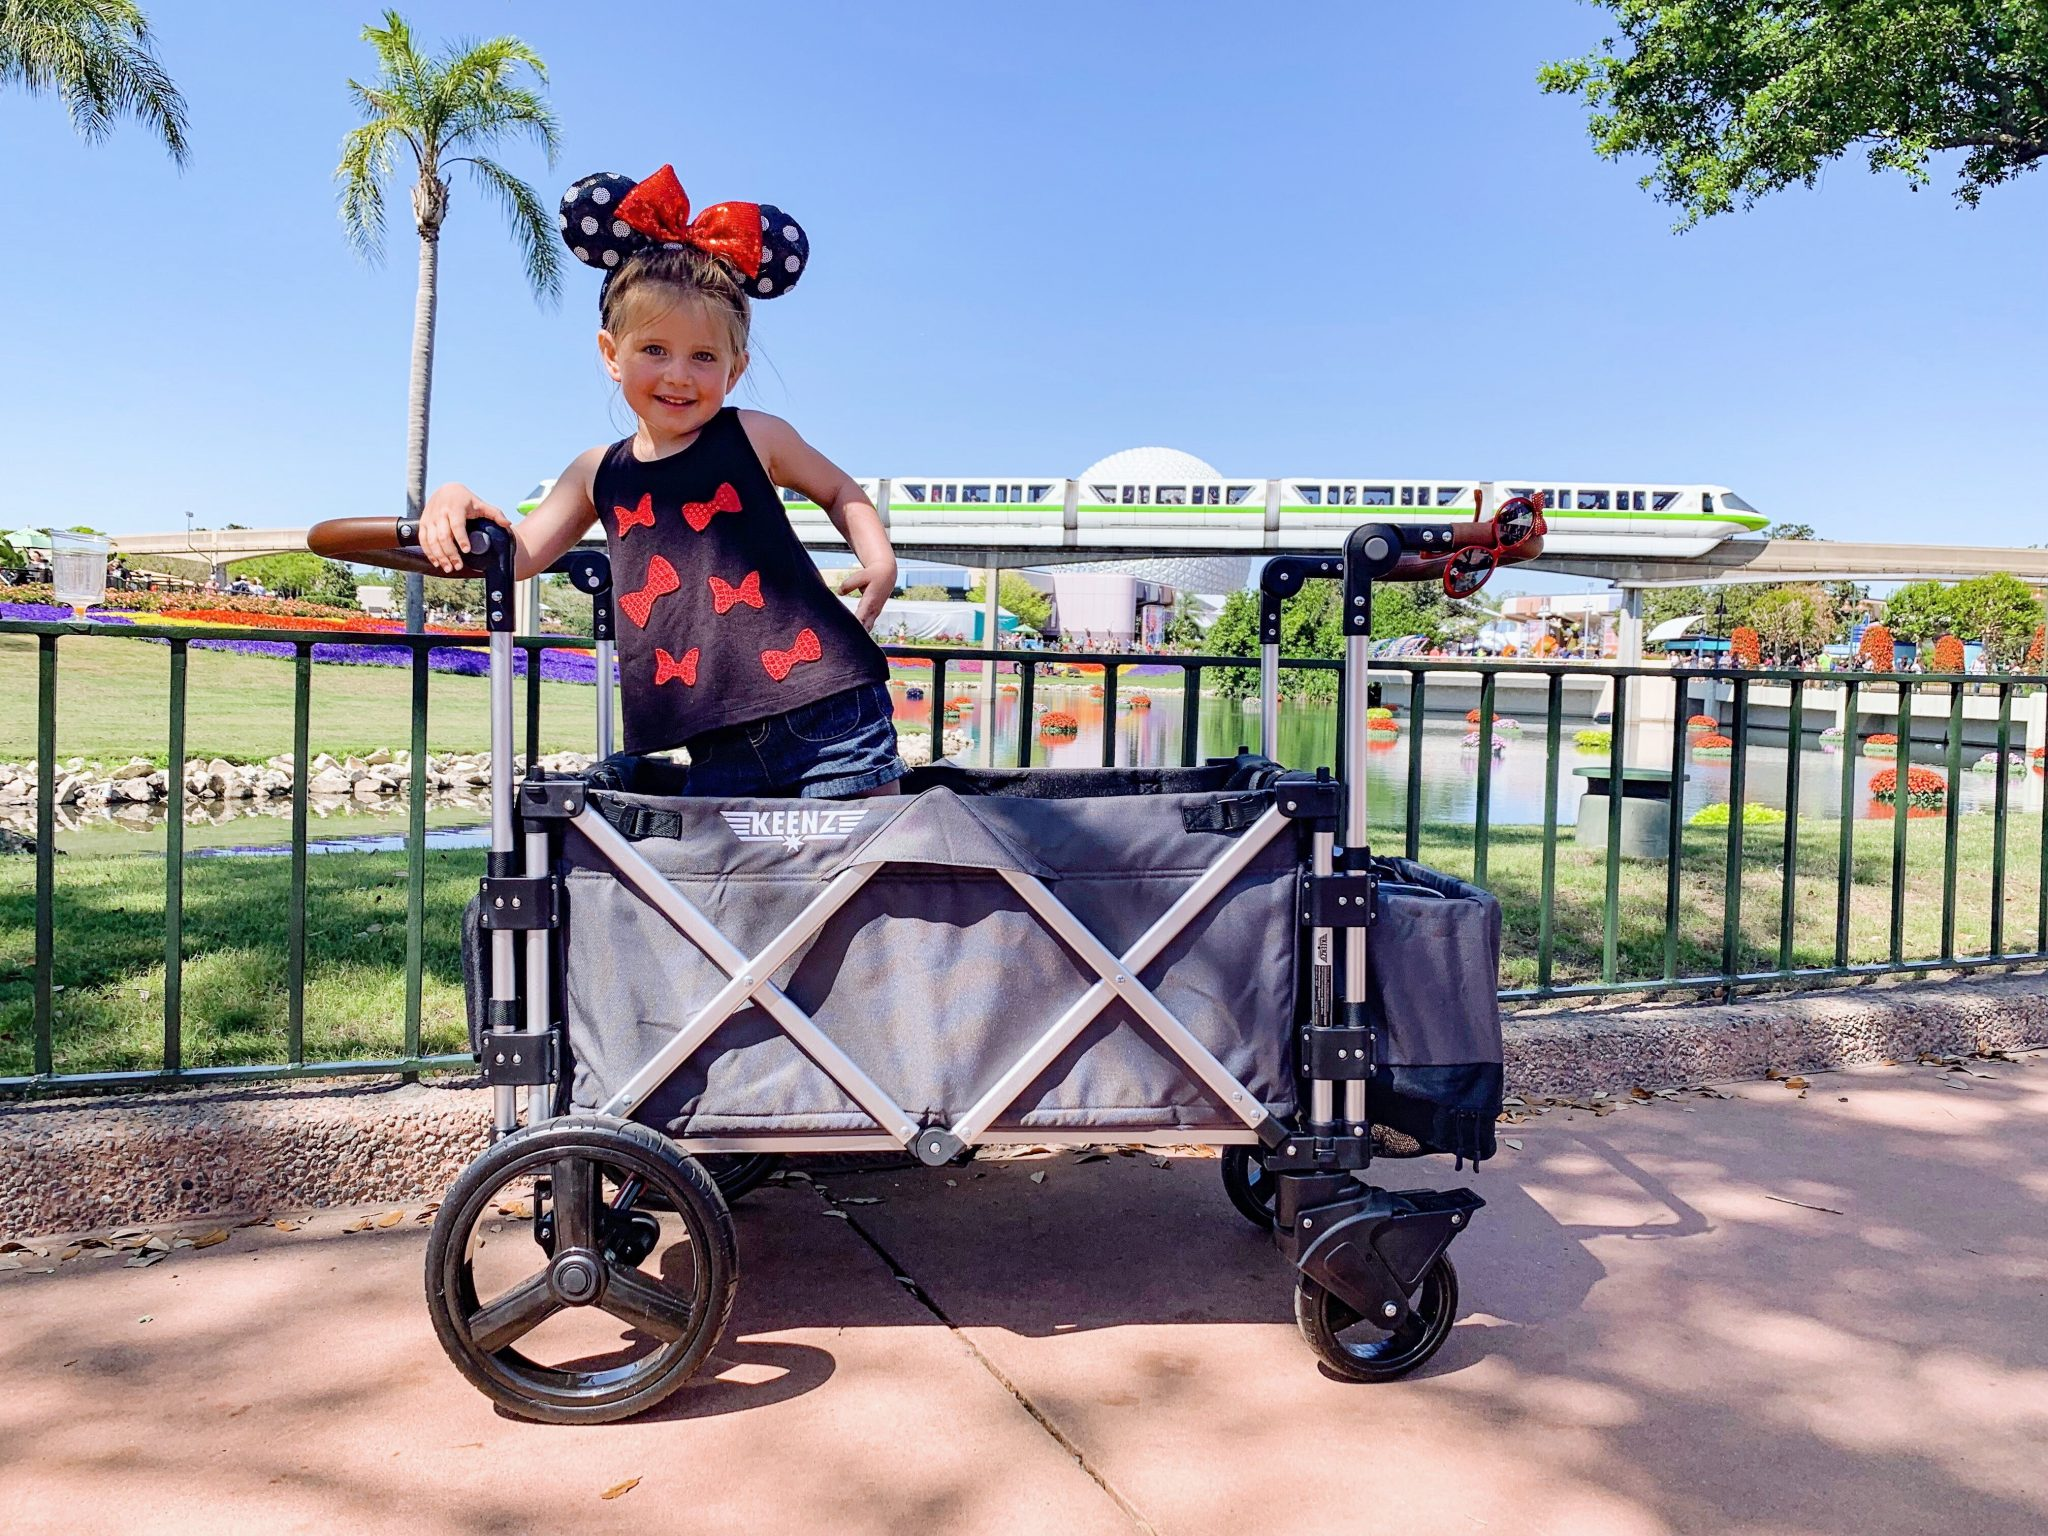 Mom Genius Keenz Stroller Wagon at Disney World